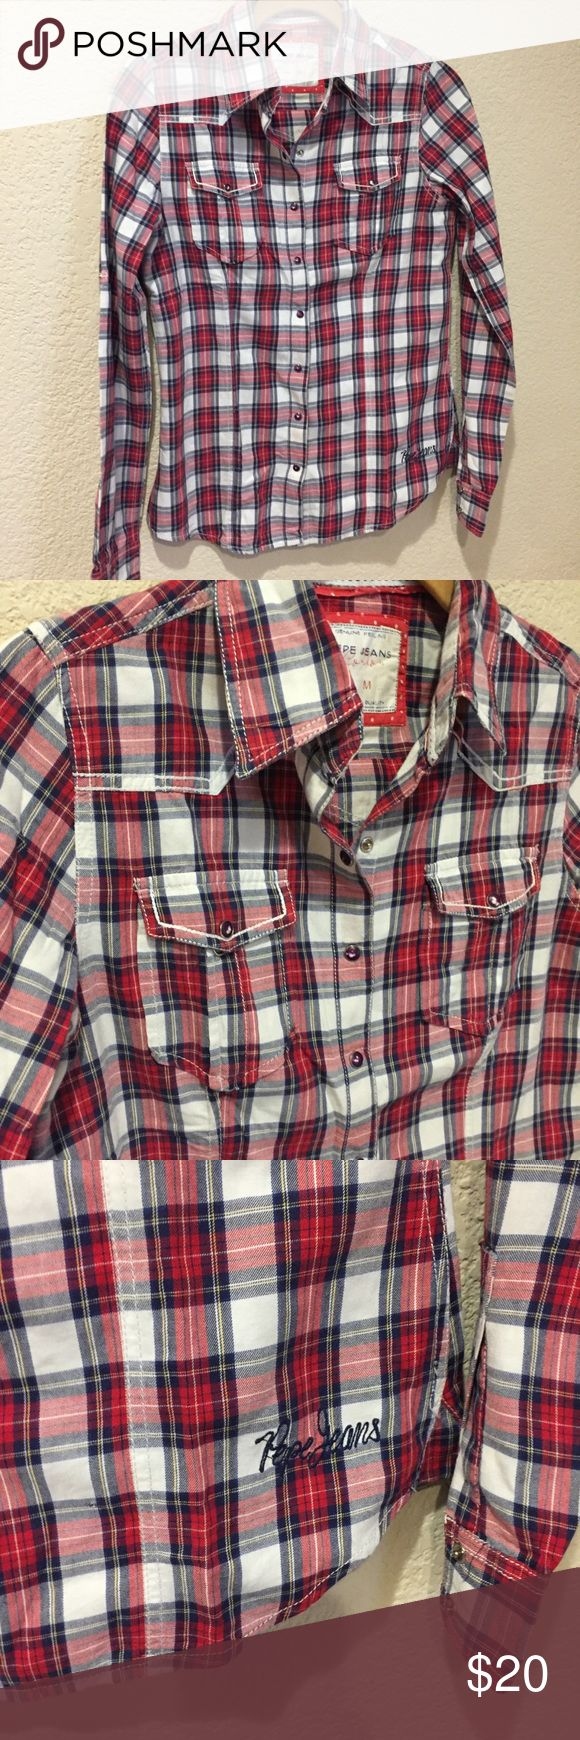 Pepe Jeans London snap plaid weather shirt Pepe Jeans London snap plaid weather shirt great preloved Pepe Jeans Tops